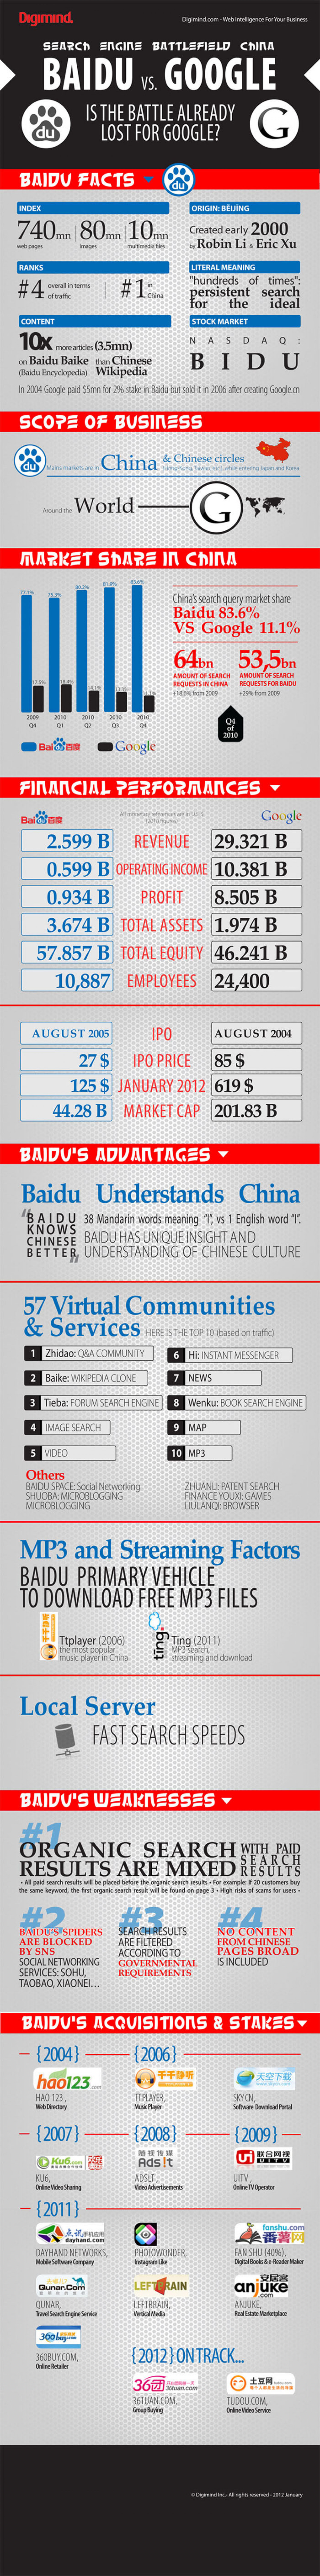 Sizing Up Google vs Baidu in China Infographic